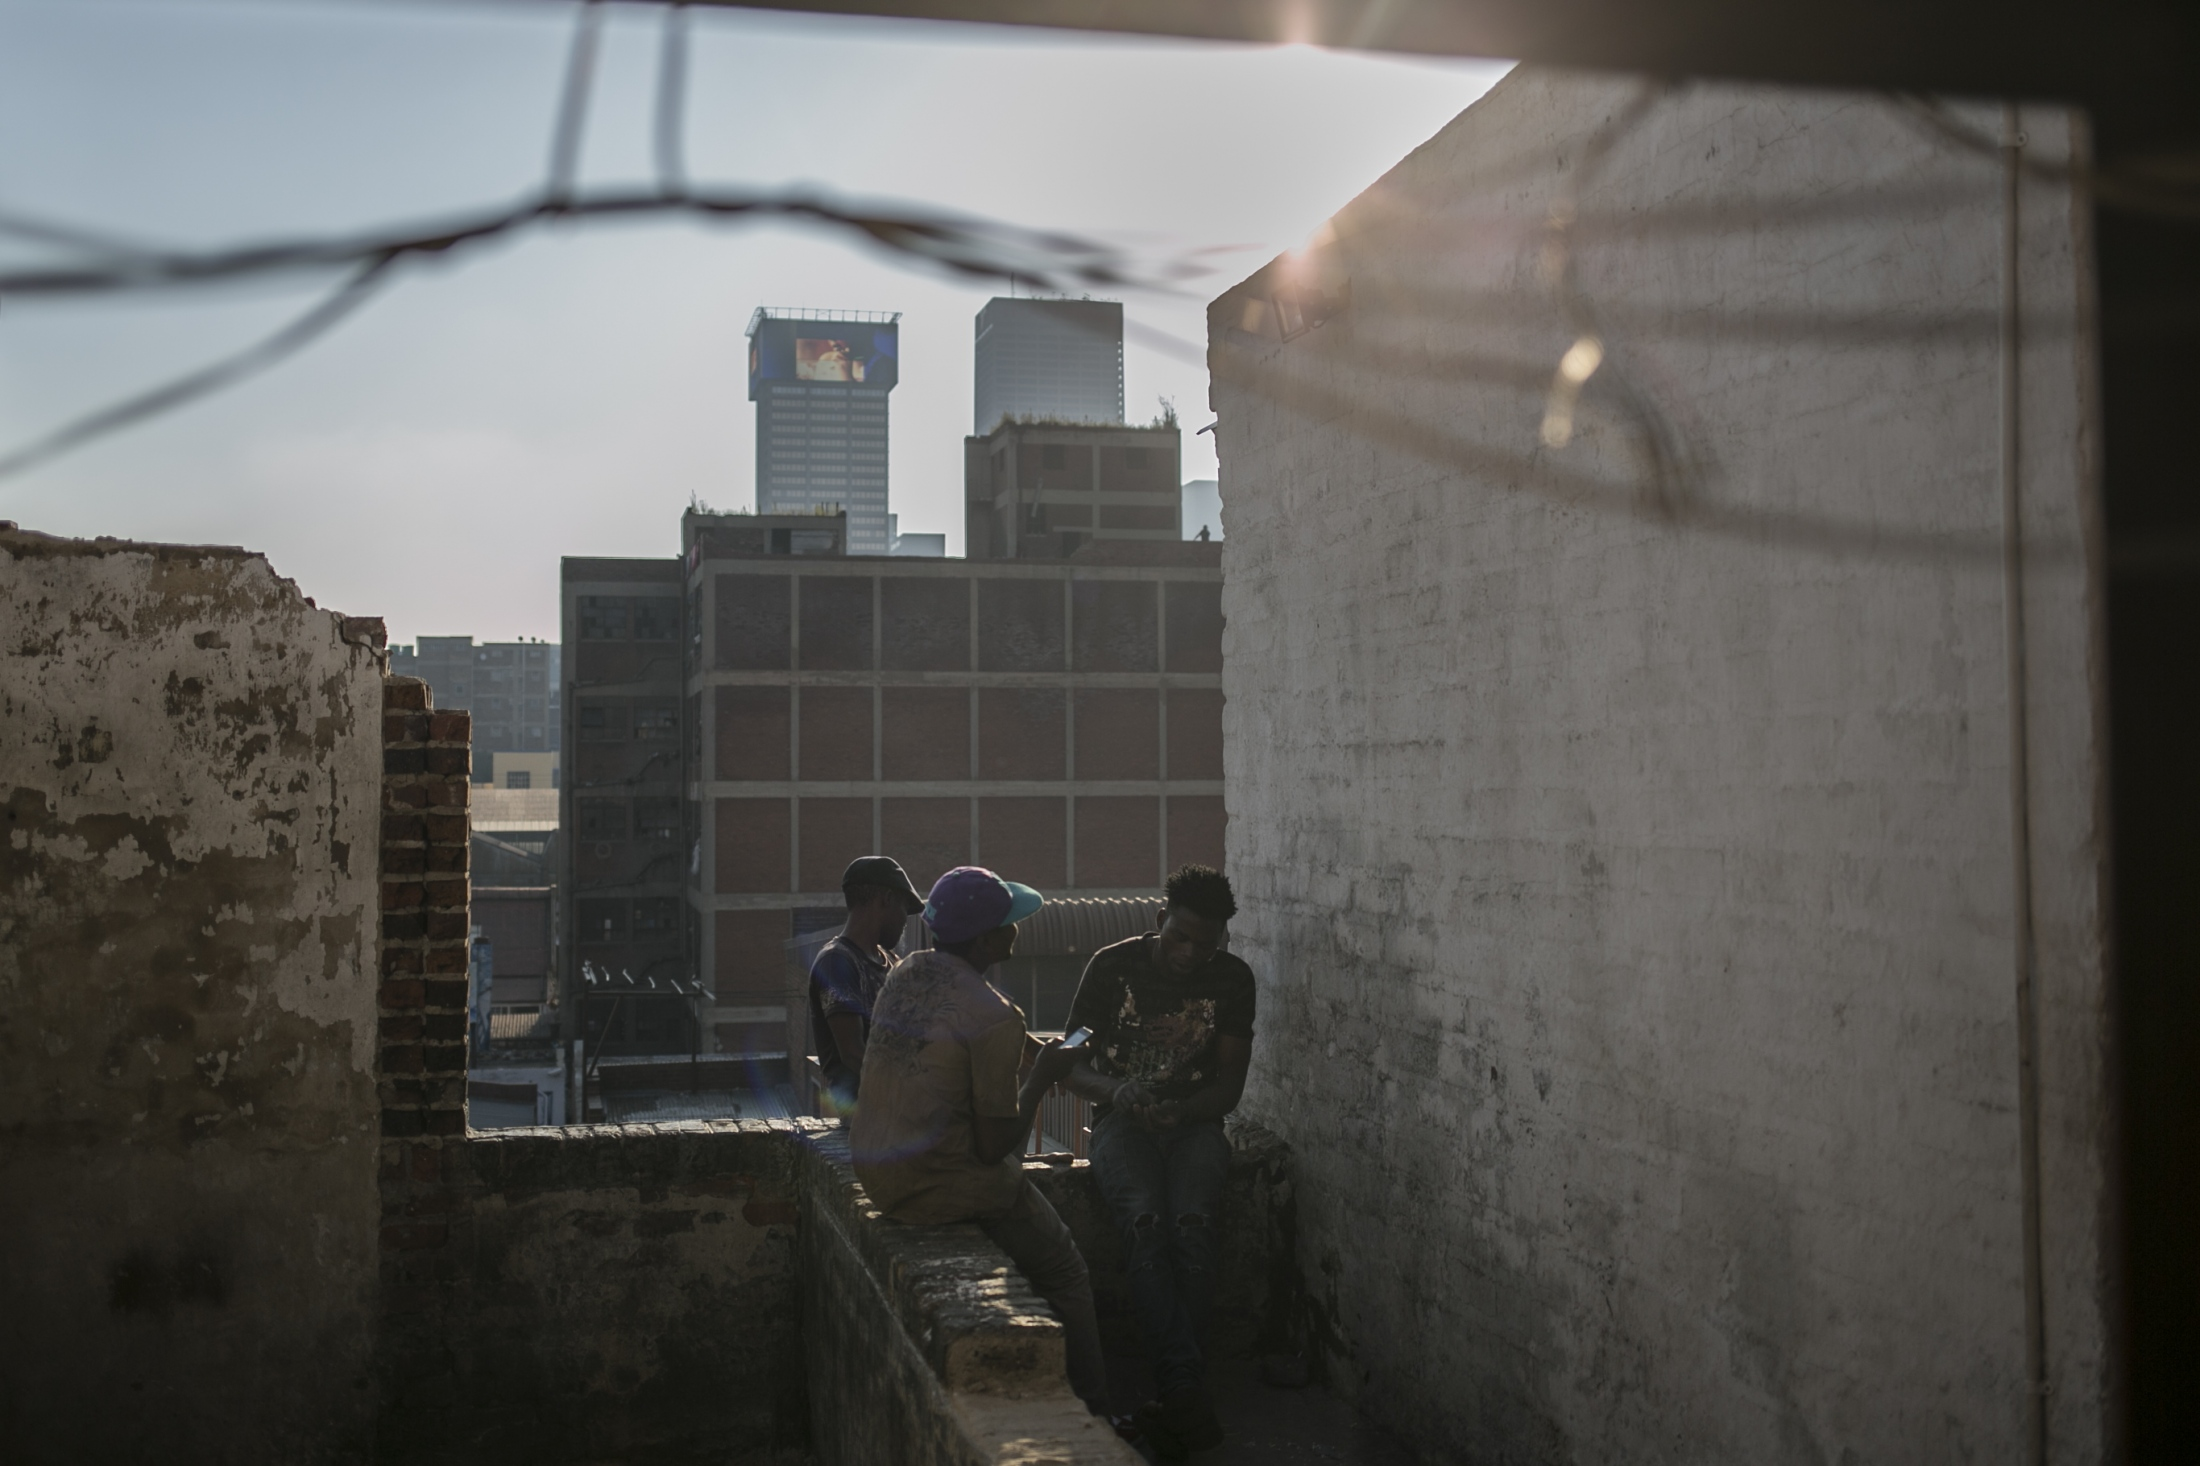 Malawian migrants sit on the rooftop of an abandoned building. March 29, 2018.